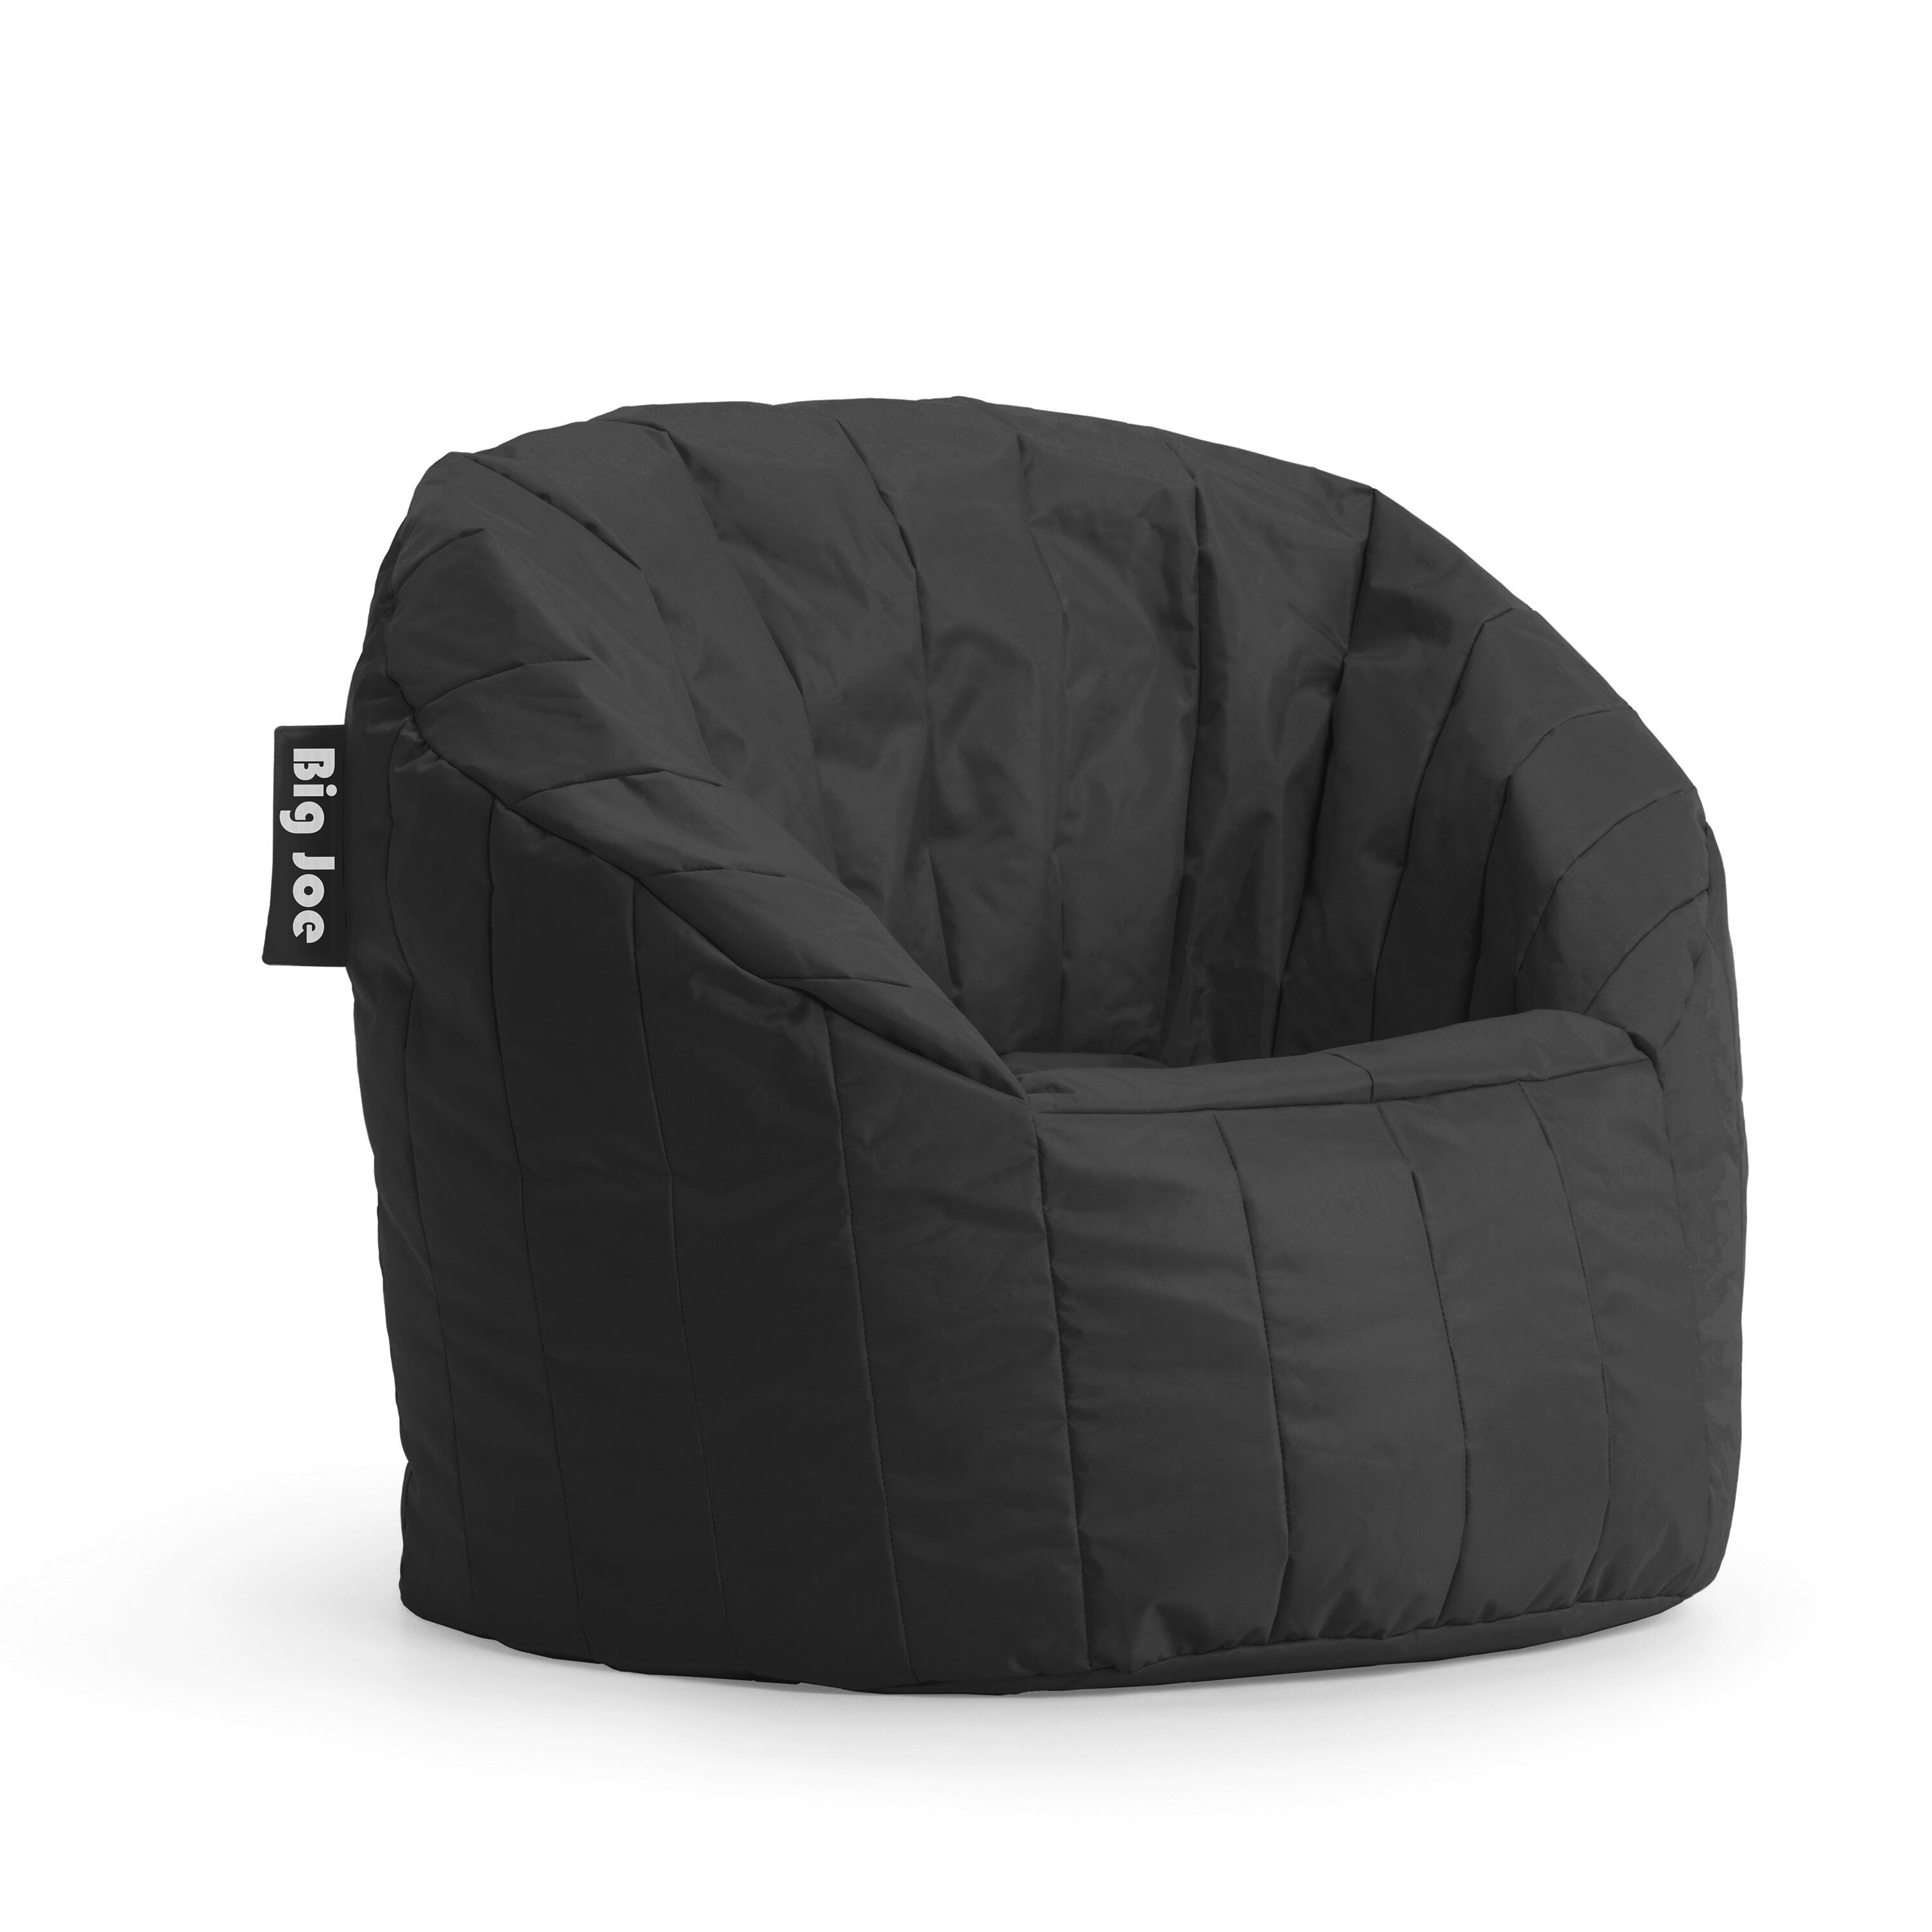 Beau Comfort Research Big Joe Bean Bag Chair U0026 Reviews | Wayfair